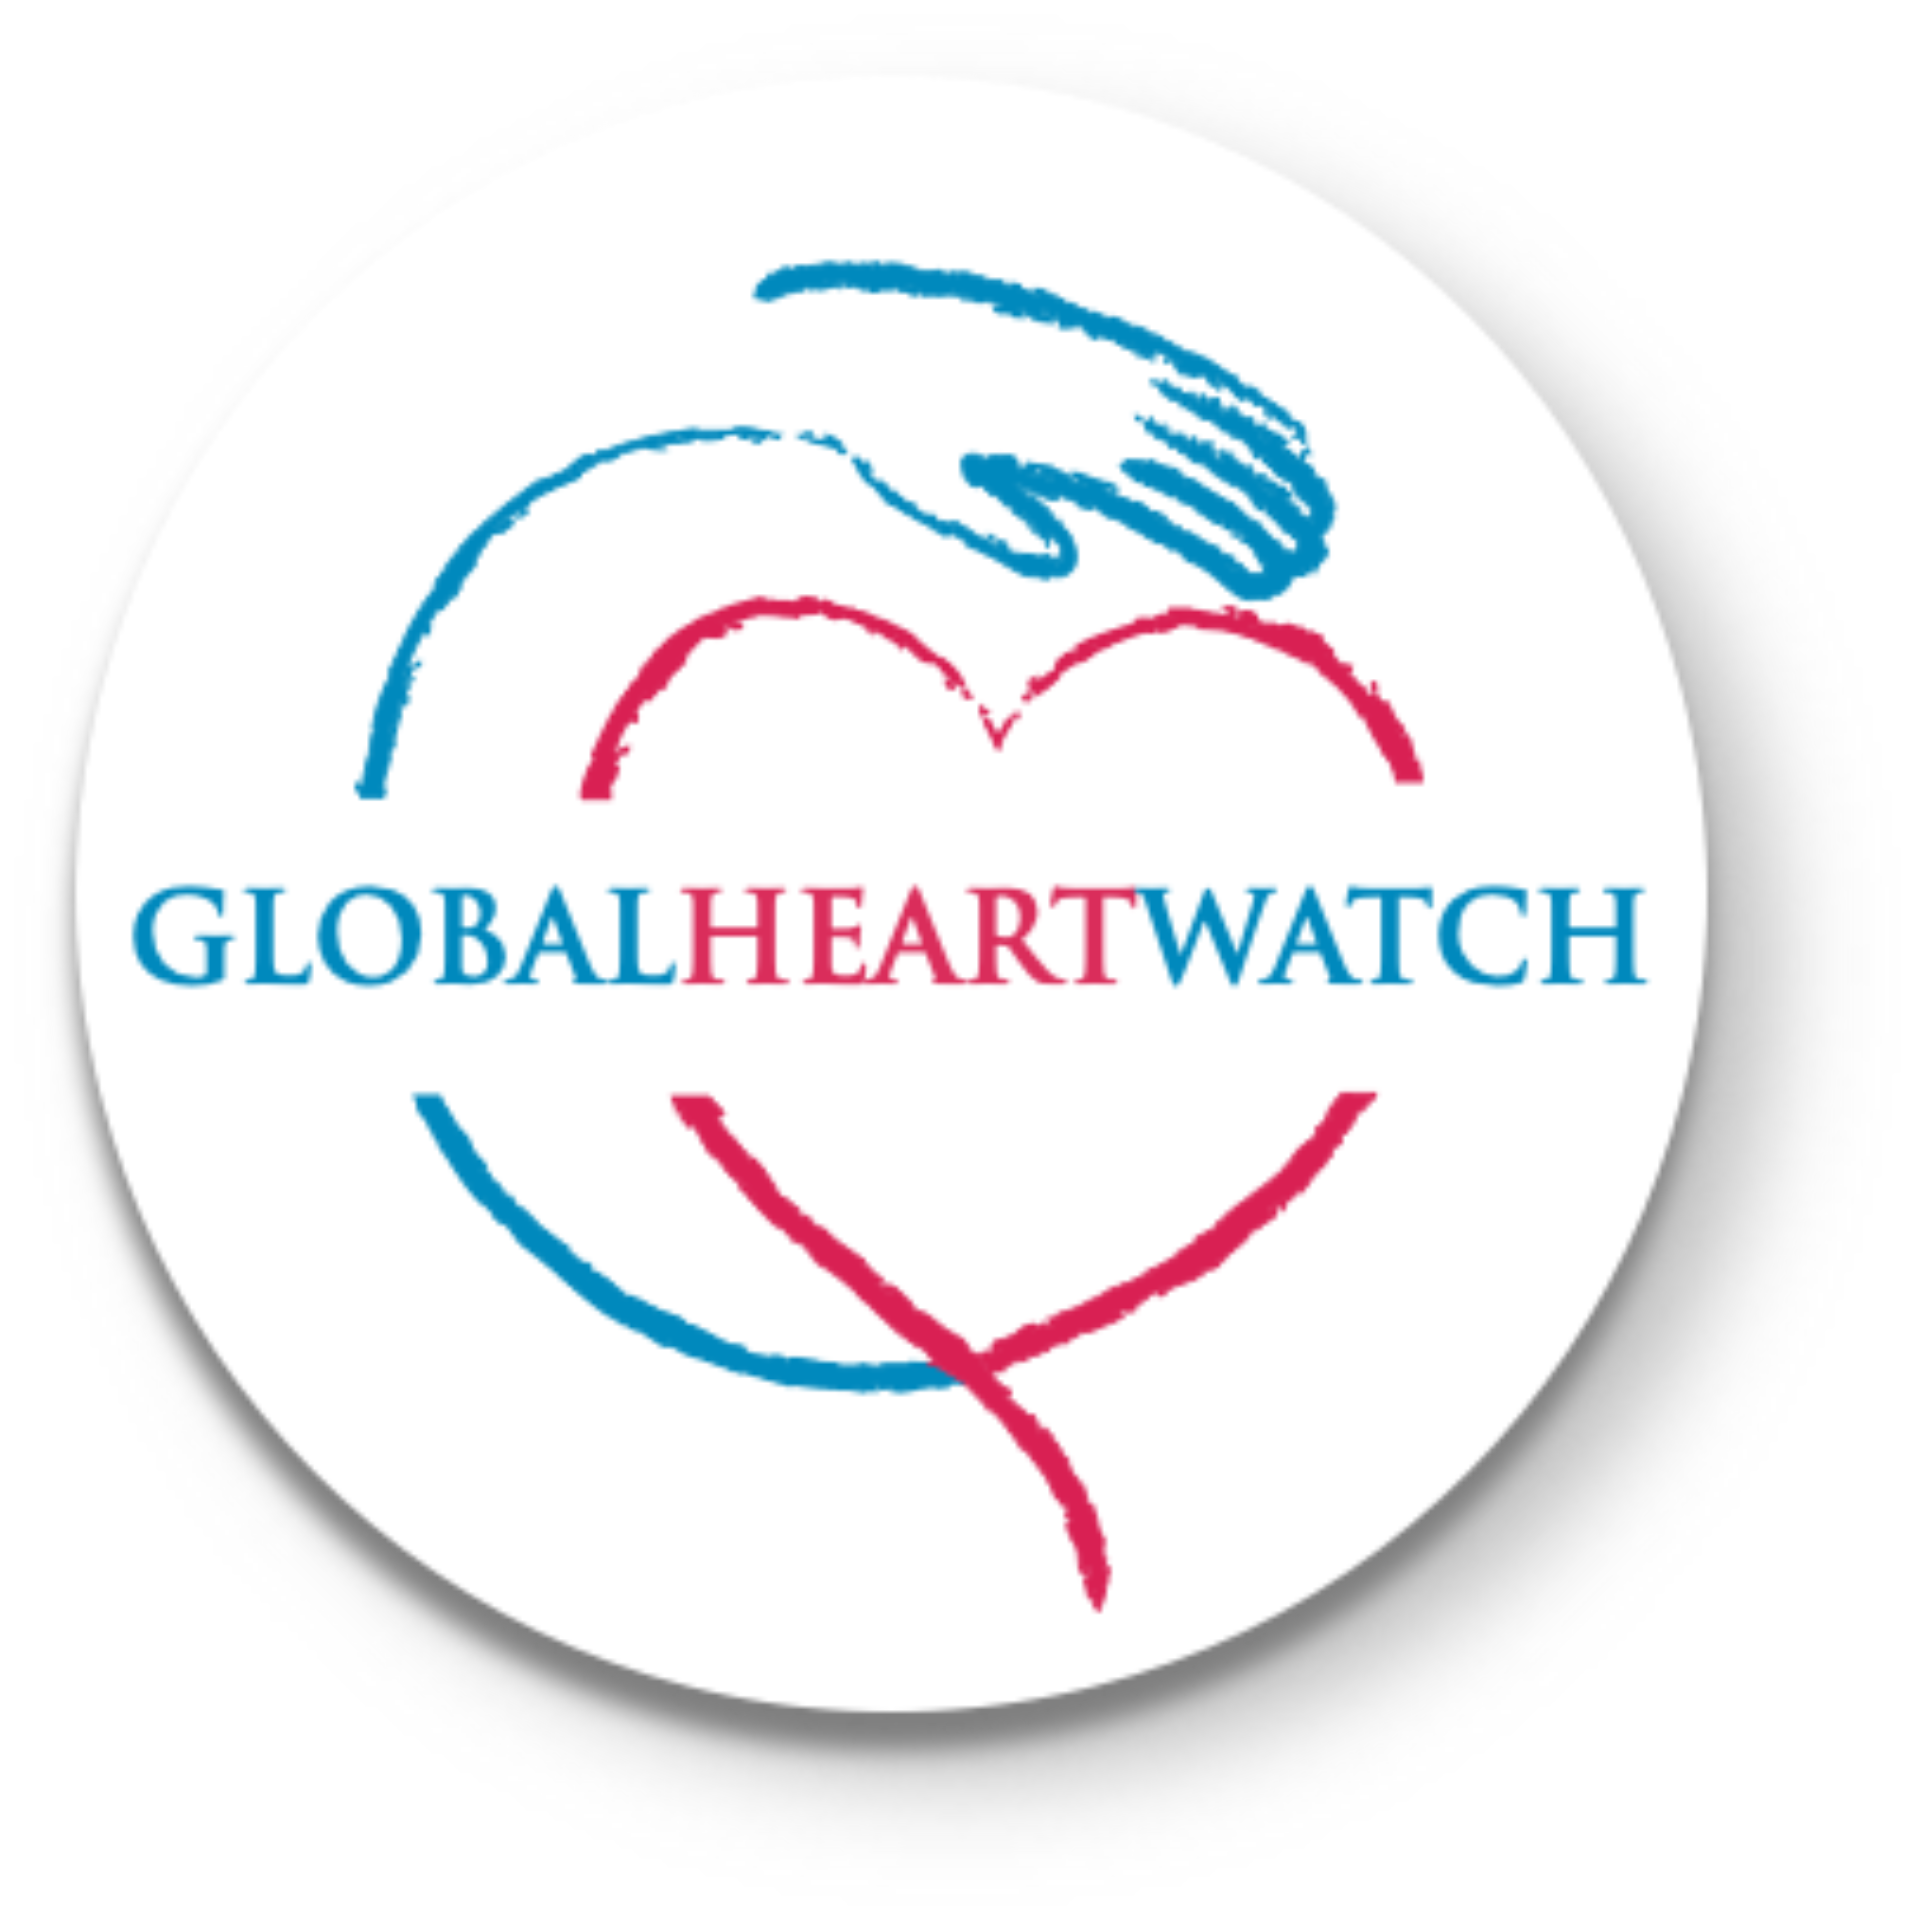 Global Heart Watch